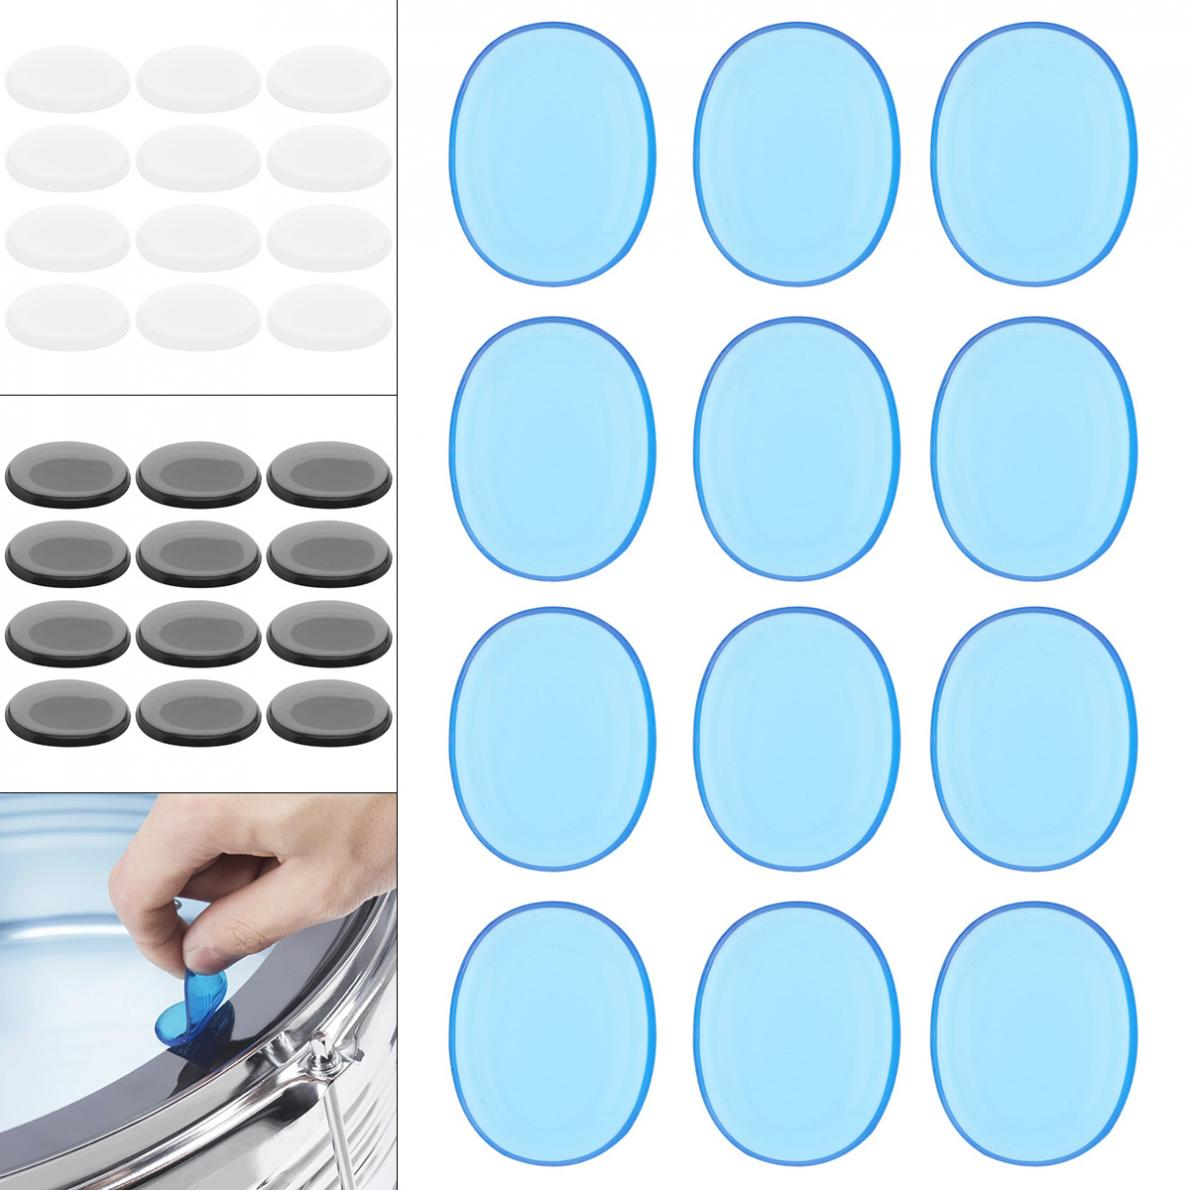 12pcs/set Drum Mute Pad Transparent Silicone Jazz  Snare Drum Muffler  3 Colors Optional 10pcs bass snare drum sound off mute silencer drumming rubber practice pad set professional dropshipping